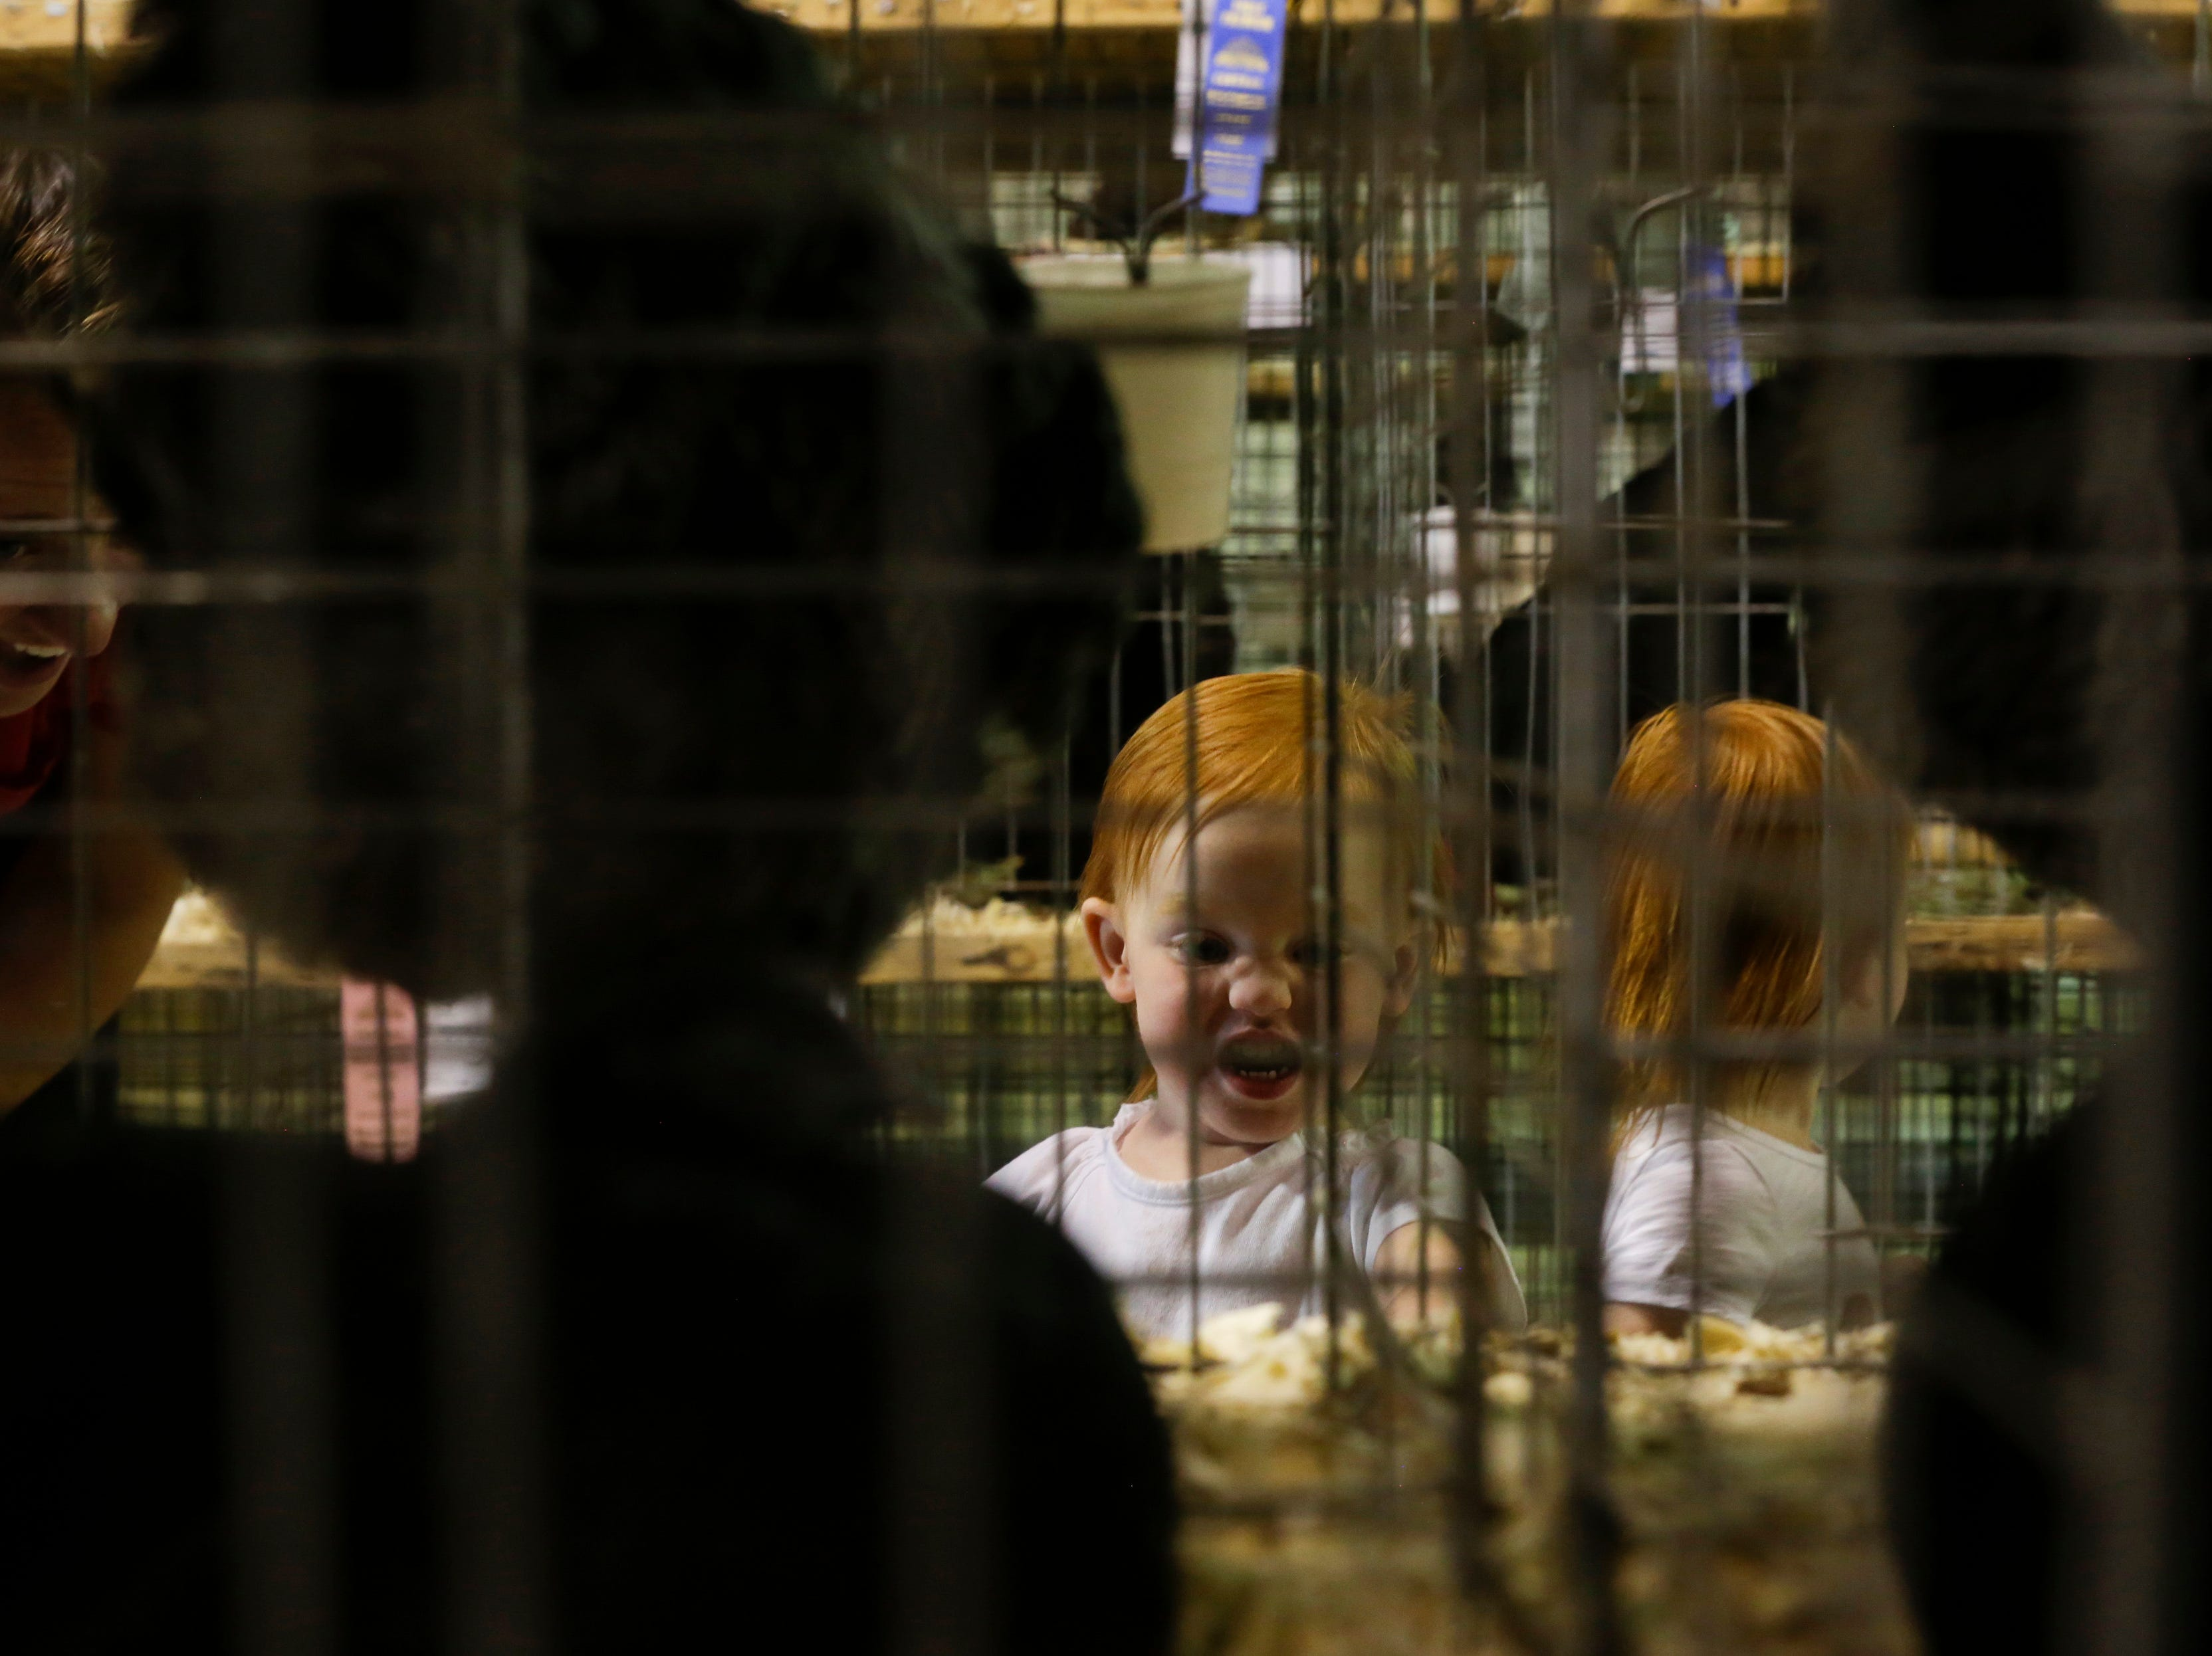 Twins Lauren and Leah Landwer, 2, look at chickens in their cages at the Central Wisconsin State Fair in Marshfield Wednesday, August 22, 2018.